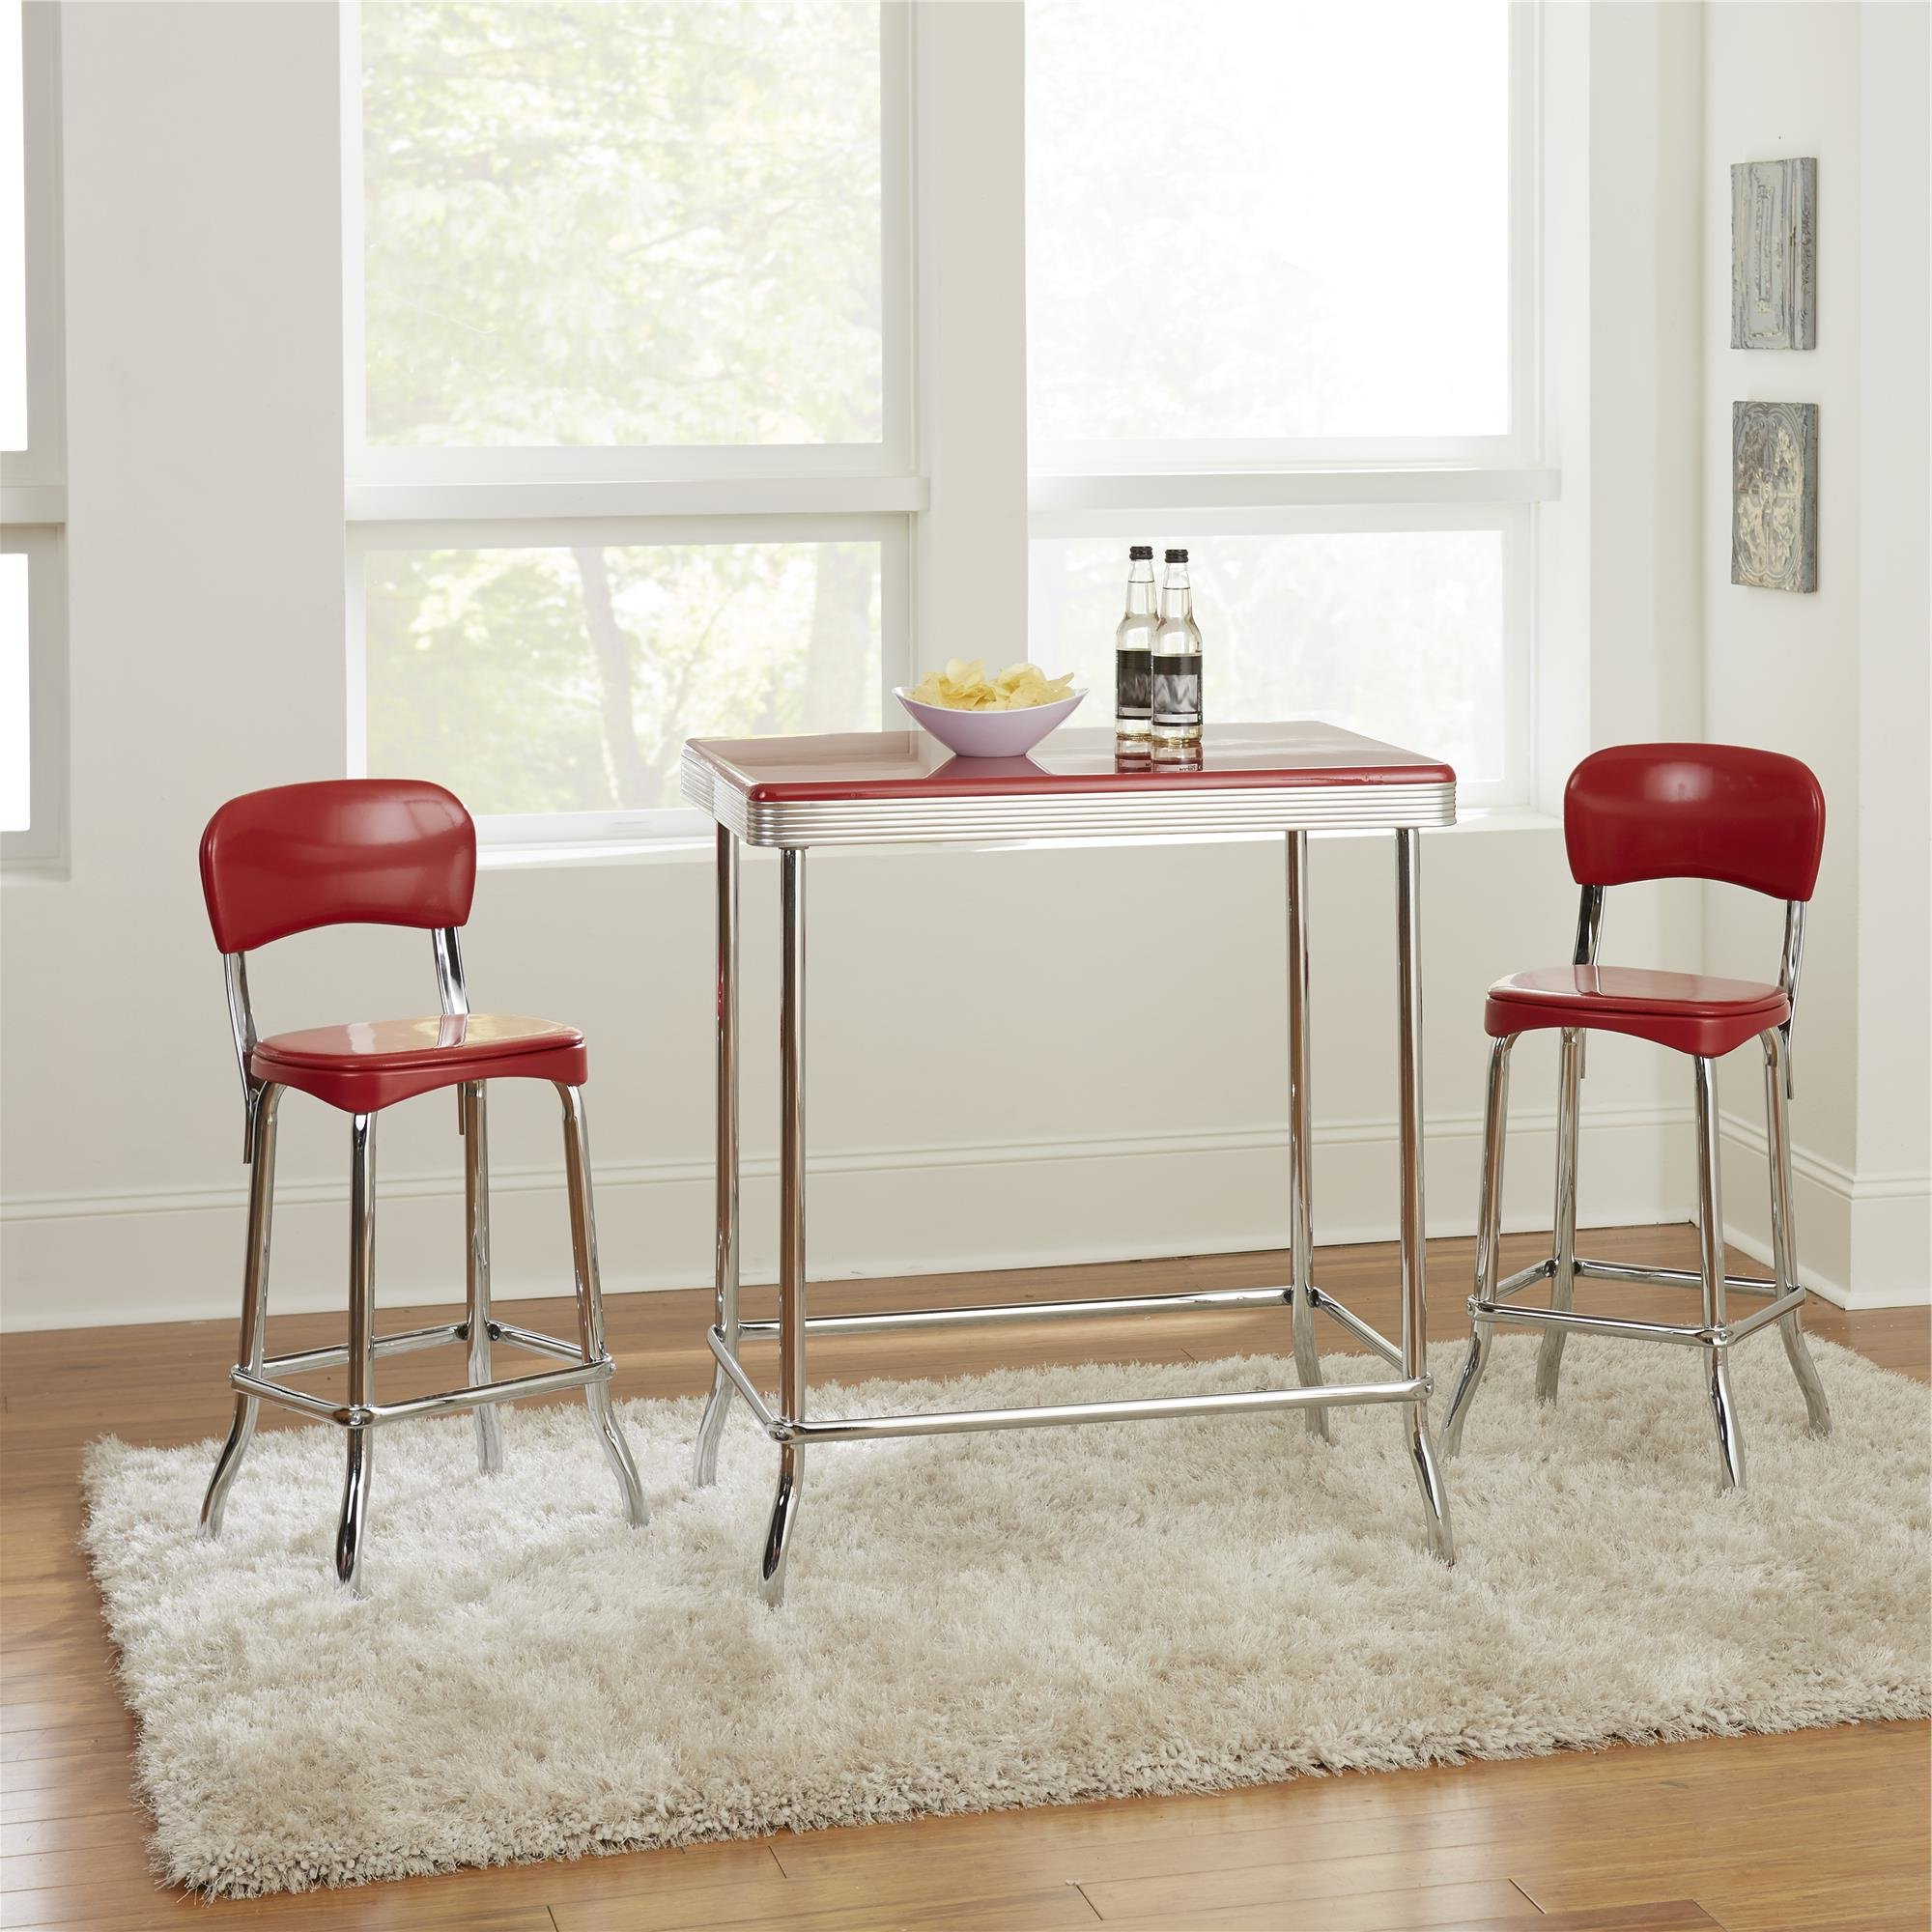 Bate Red Retro 3 Piece Dining Set In Fashionable Smyrna 3 Piece Dining Sets (View 2 of 20)